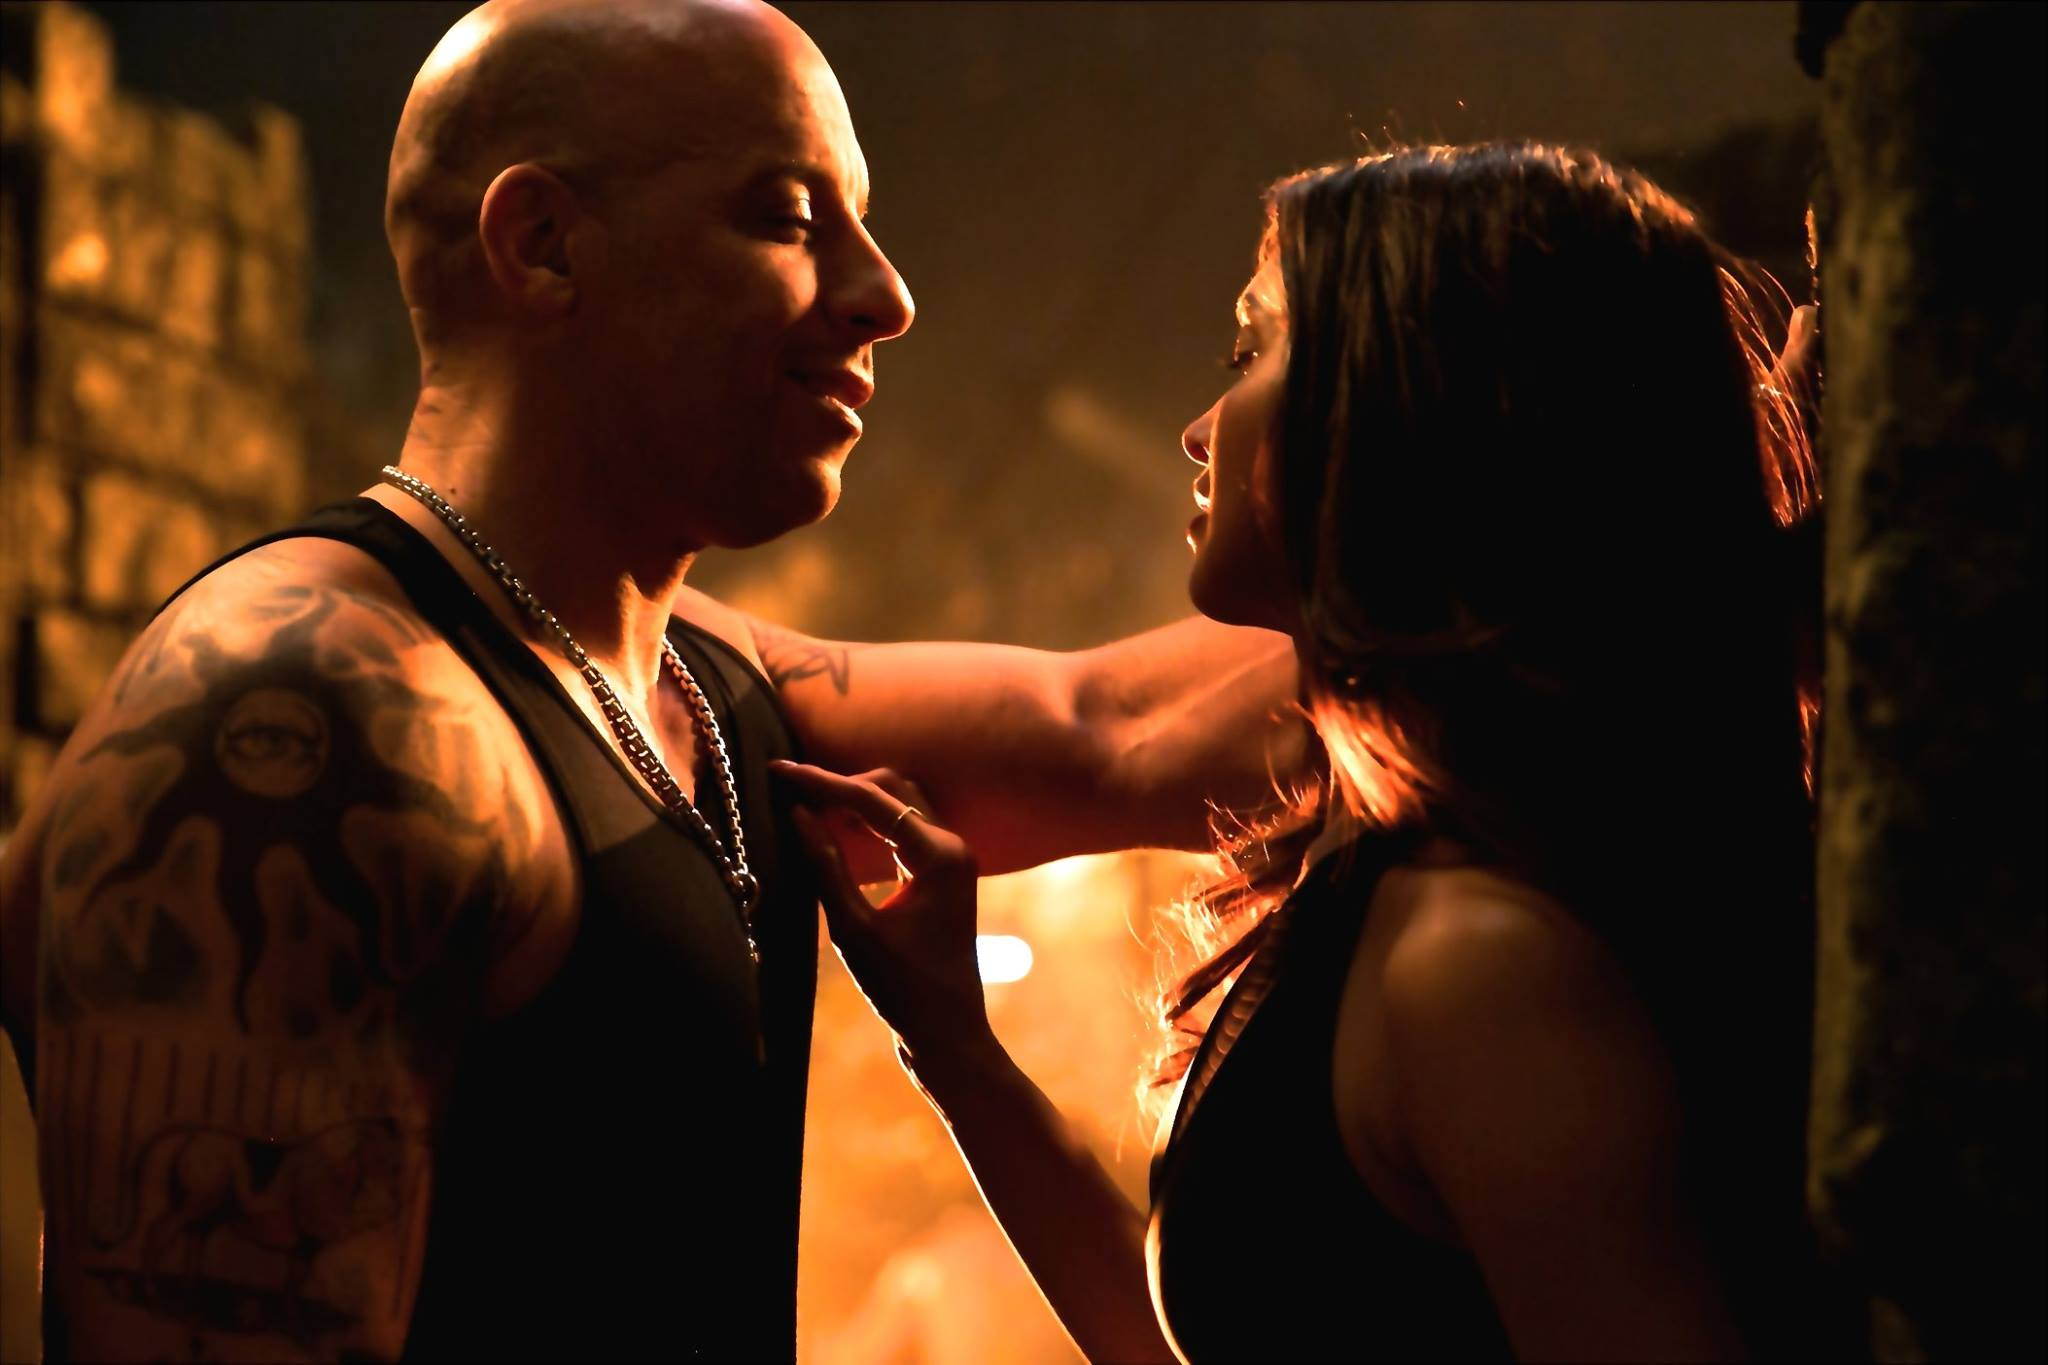 xXx: Return of Xander Cage widescreen wallpapers